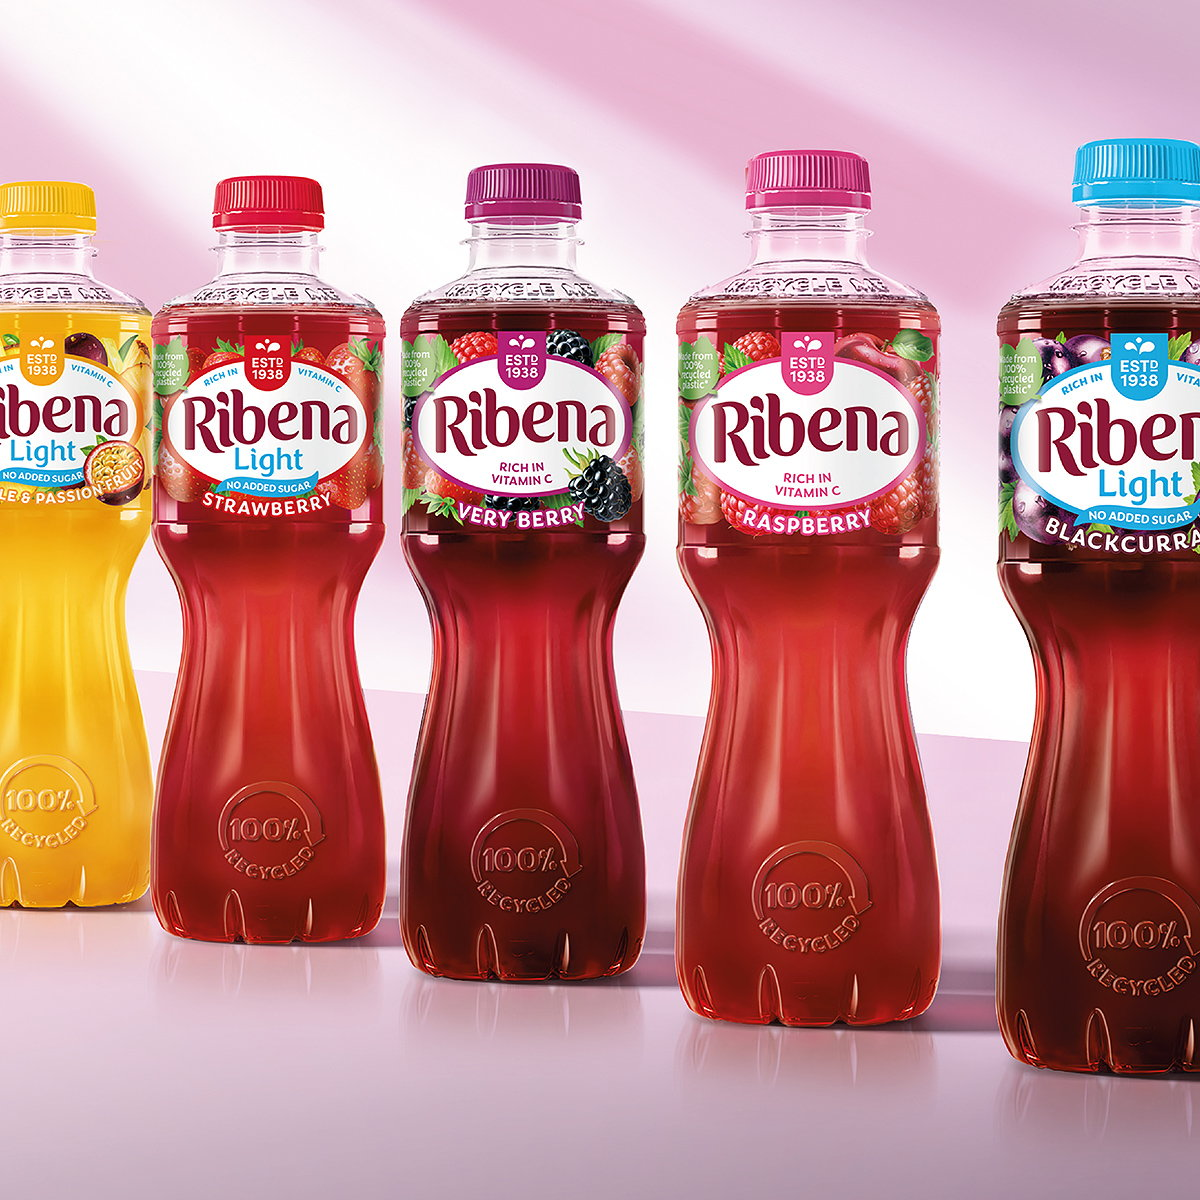 Seymourpowell Completes Extensive Brand and Packaging Renovation for Ribena